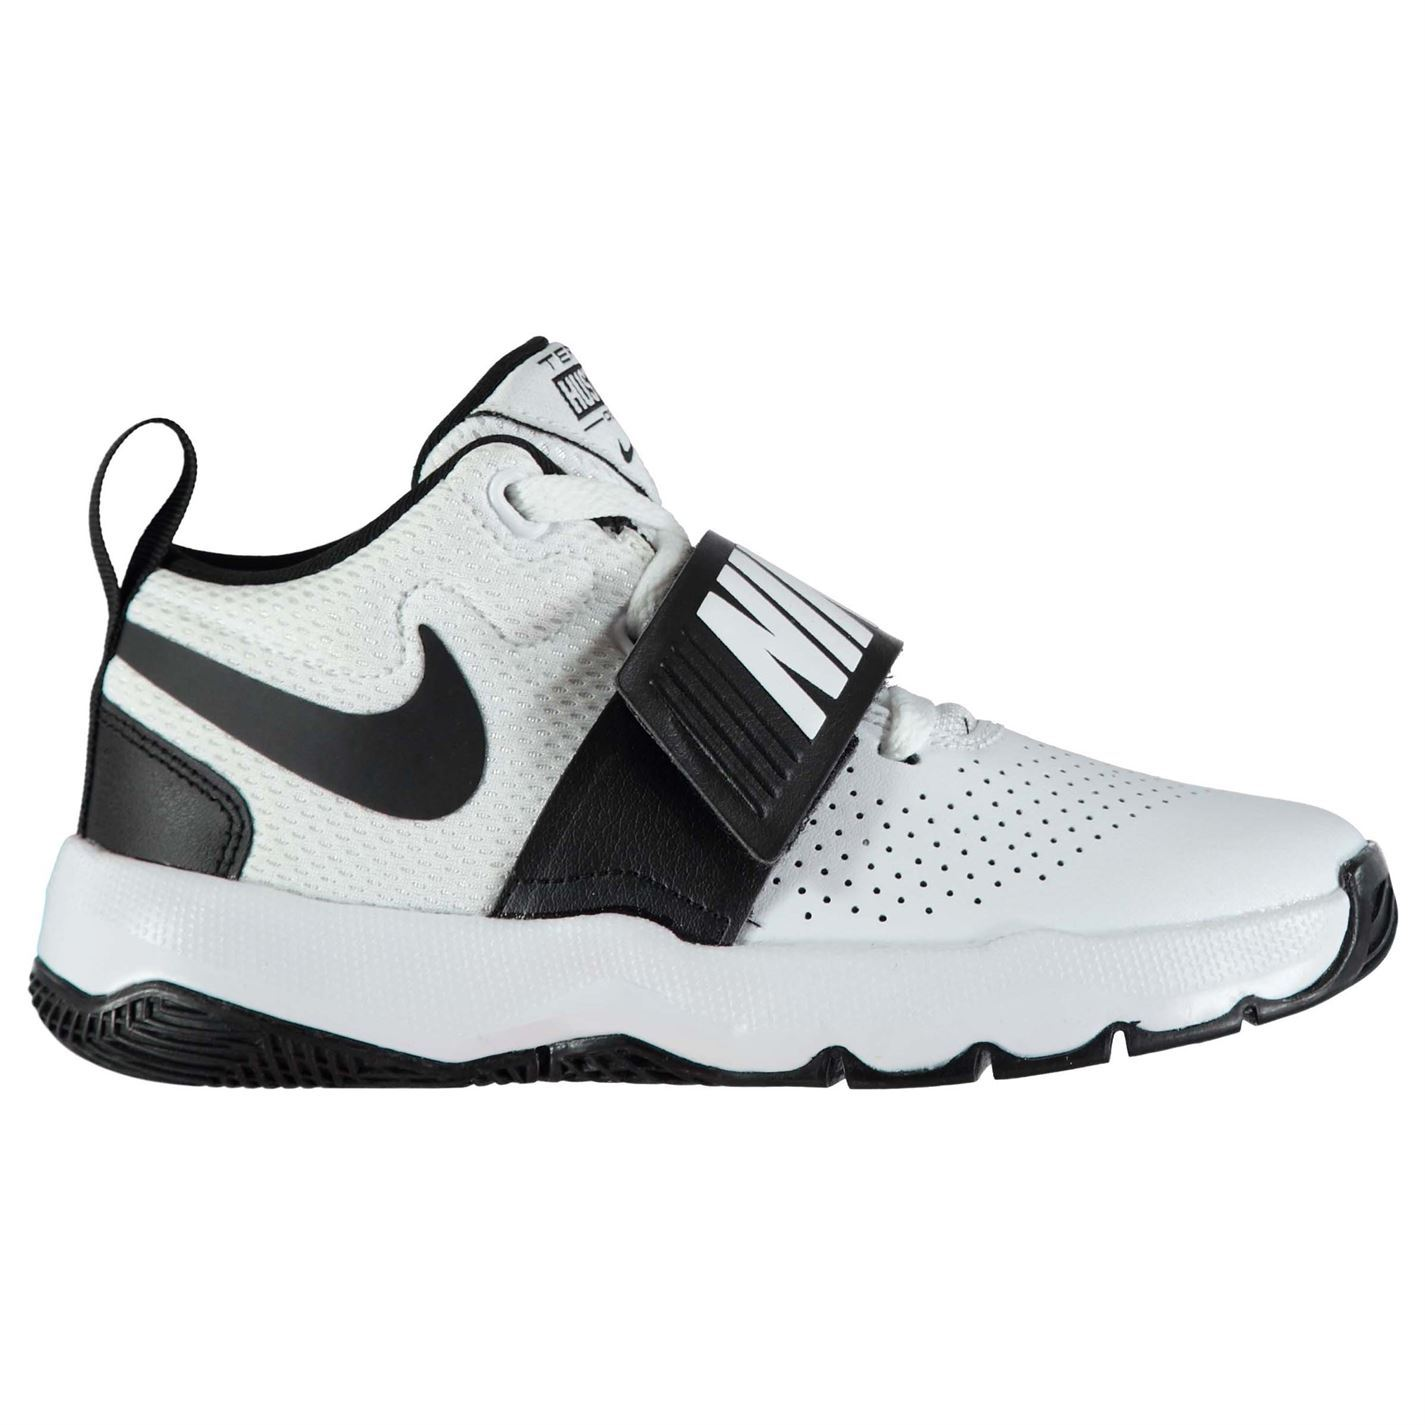 e9d52a5b2d2a ... Nike Team Hustle D8 Basketball Shoes Juniors White Black Trainers  Sneakers ...